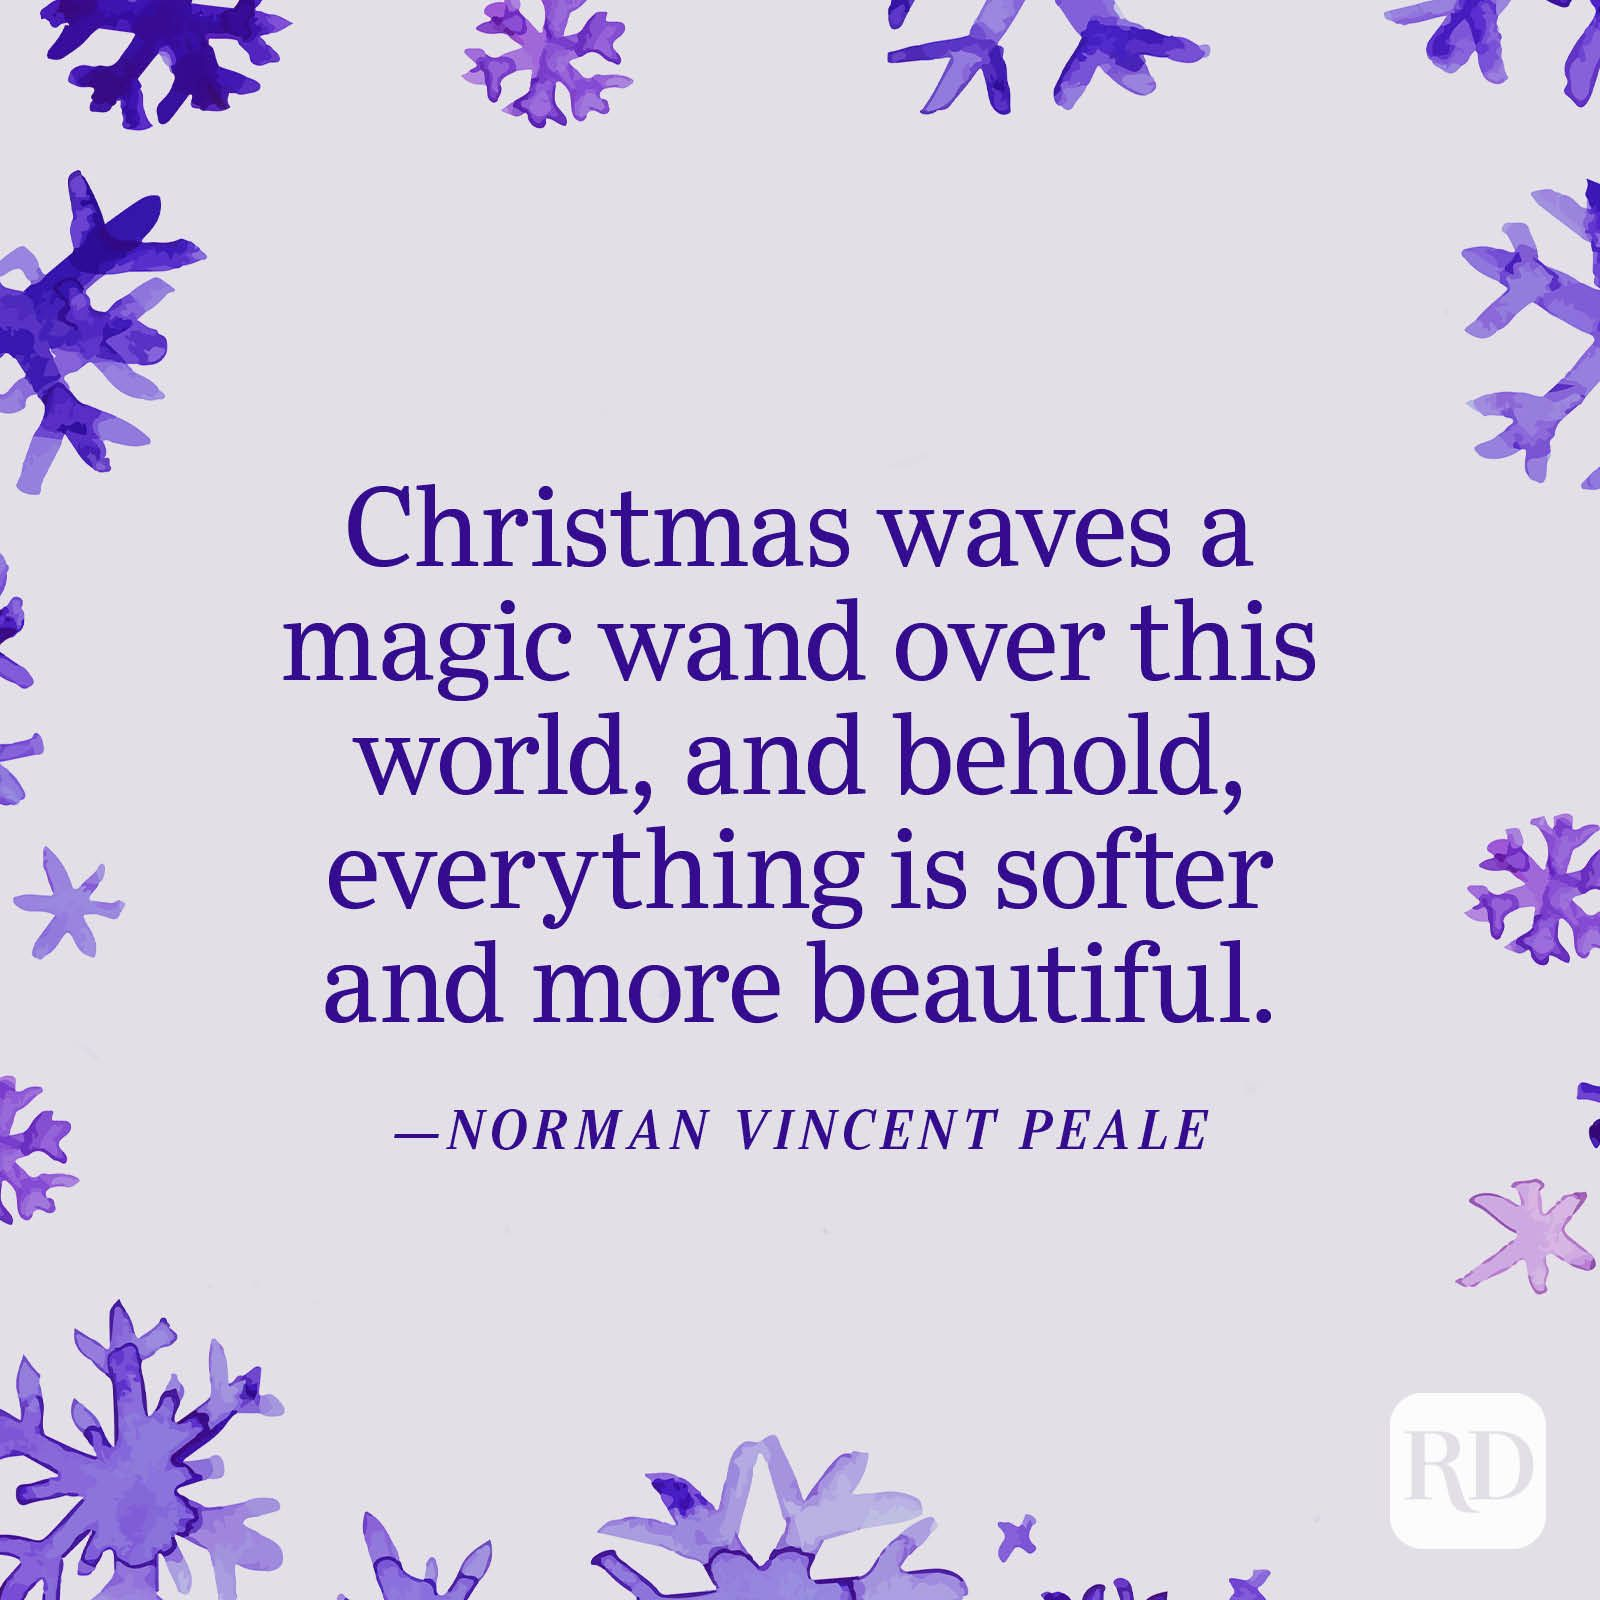 """""""Christmas waves a magic wand over this world, and behold, everything is softer and more beautiful."""" —Norman Vincent Peale"""